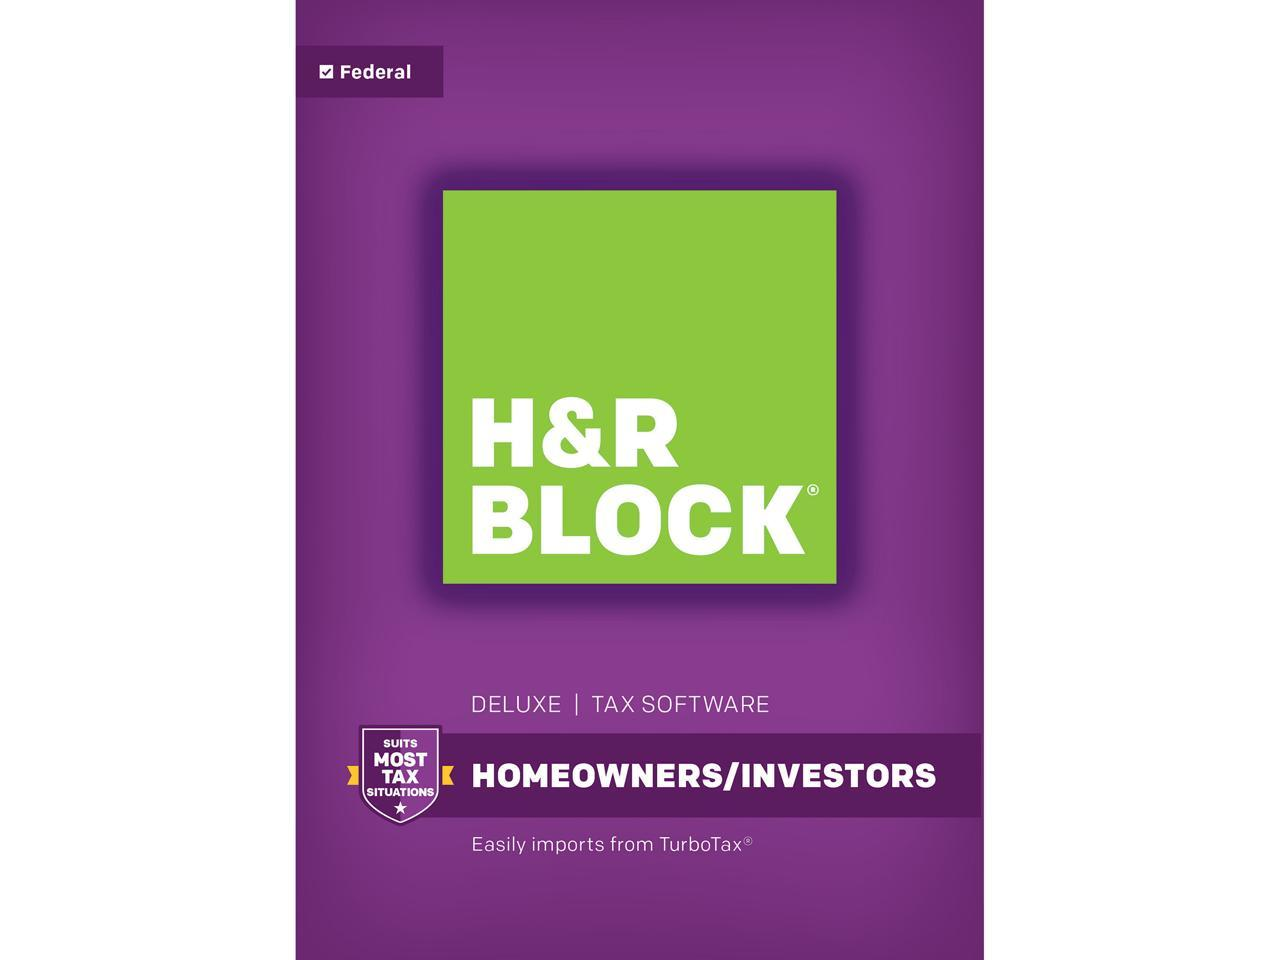 H&R BLOCK Tax Software Deluxe Windows + $10 Gift Card